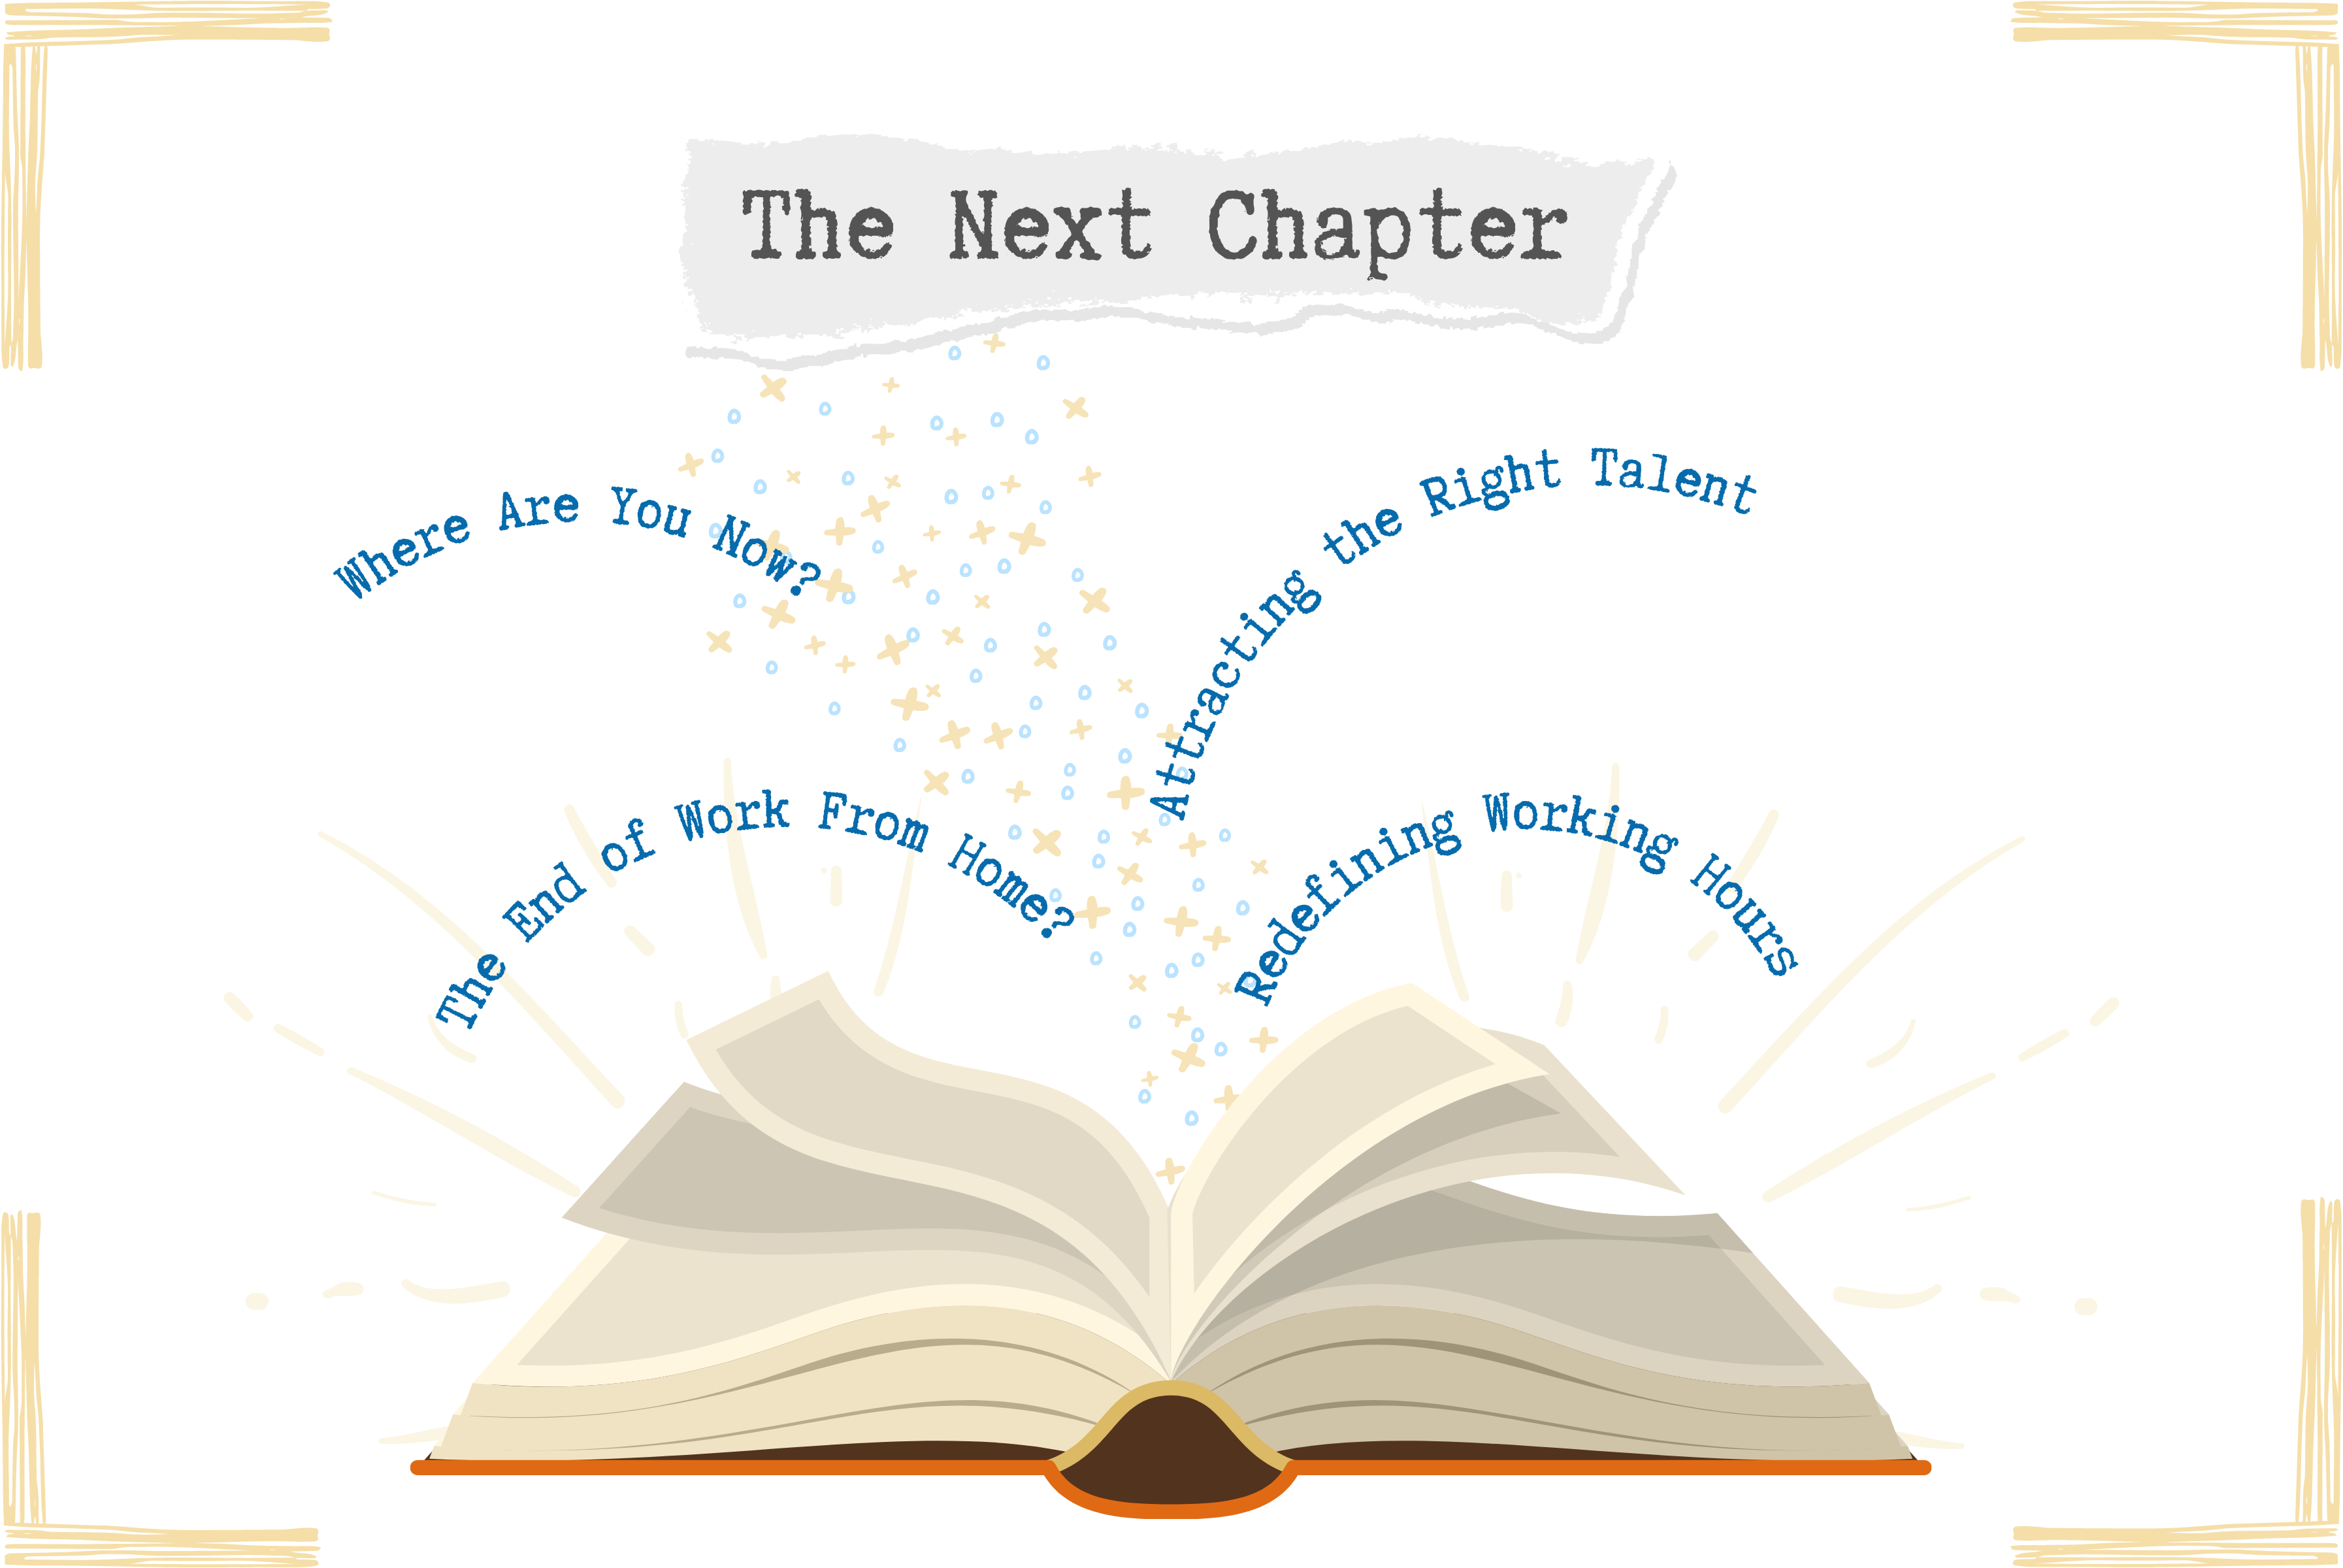 HR, Recruitment and Work-Life Balance: The Next Chapter